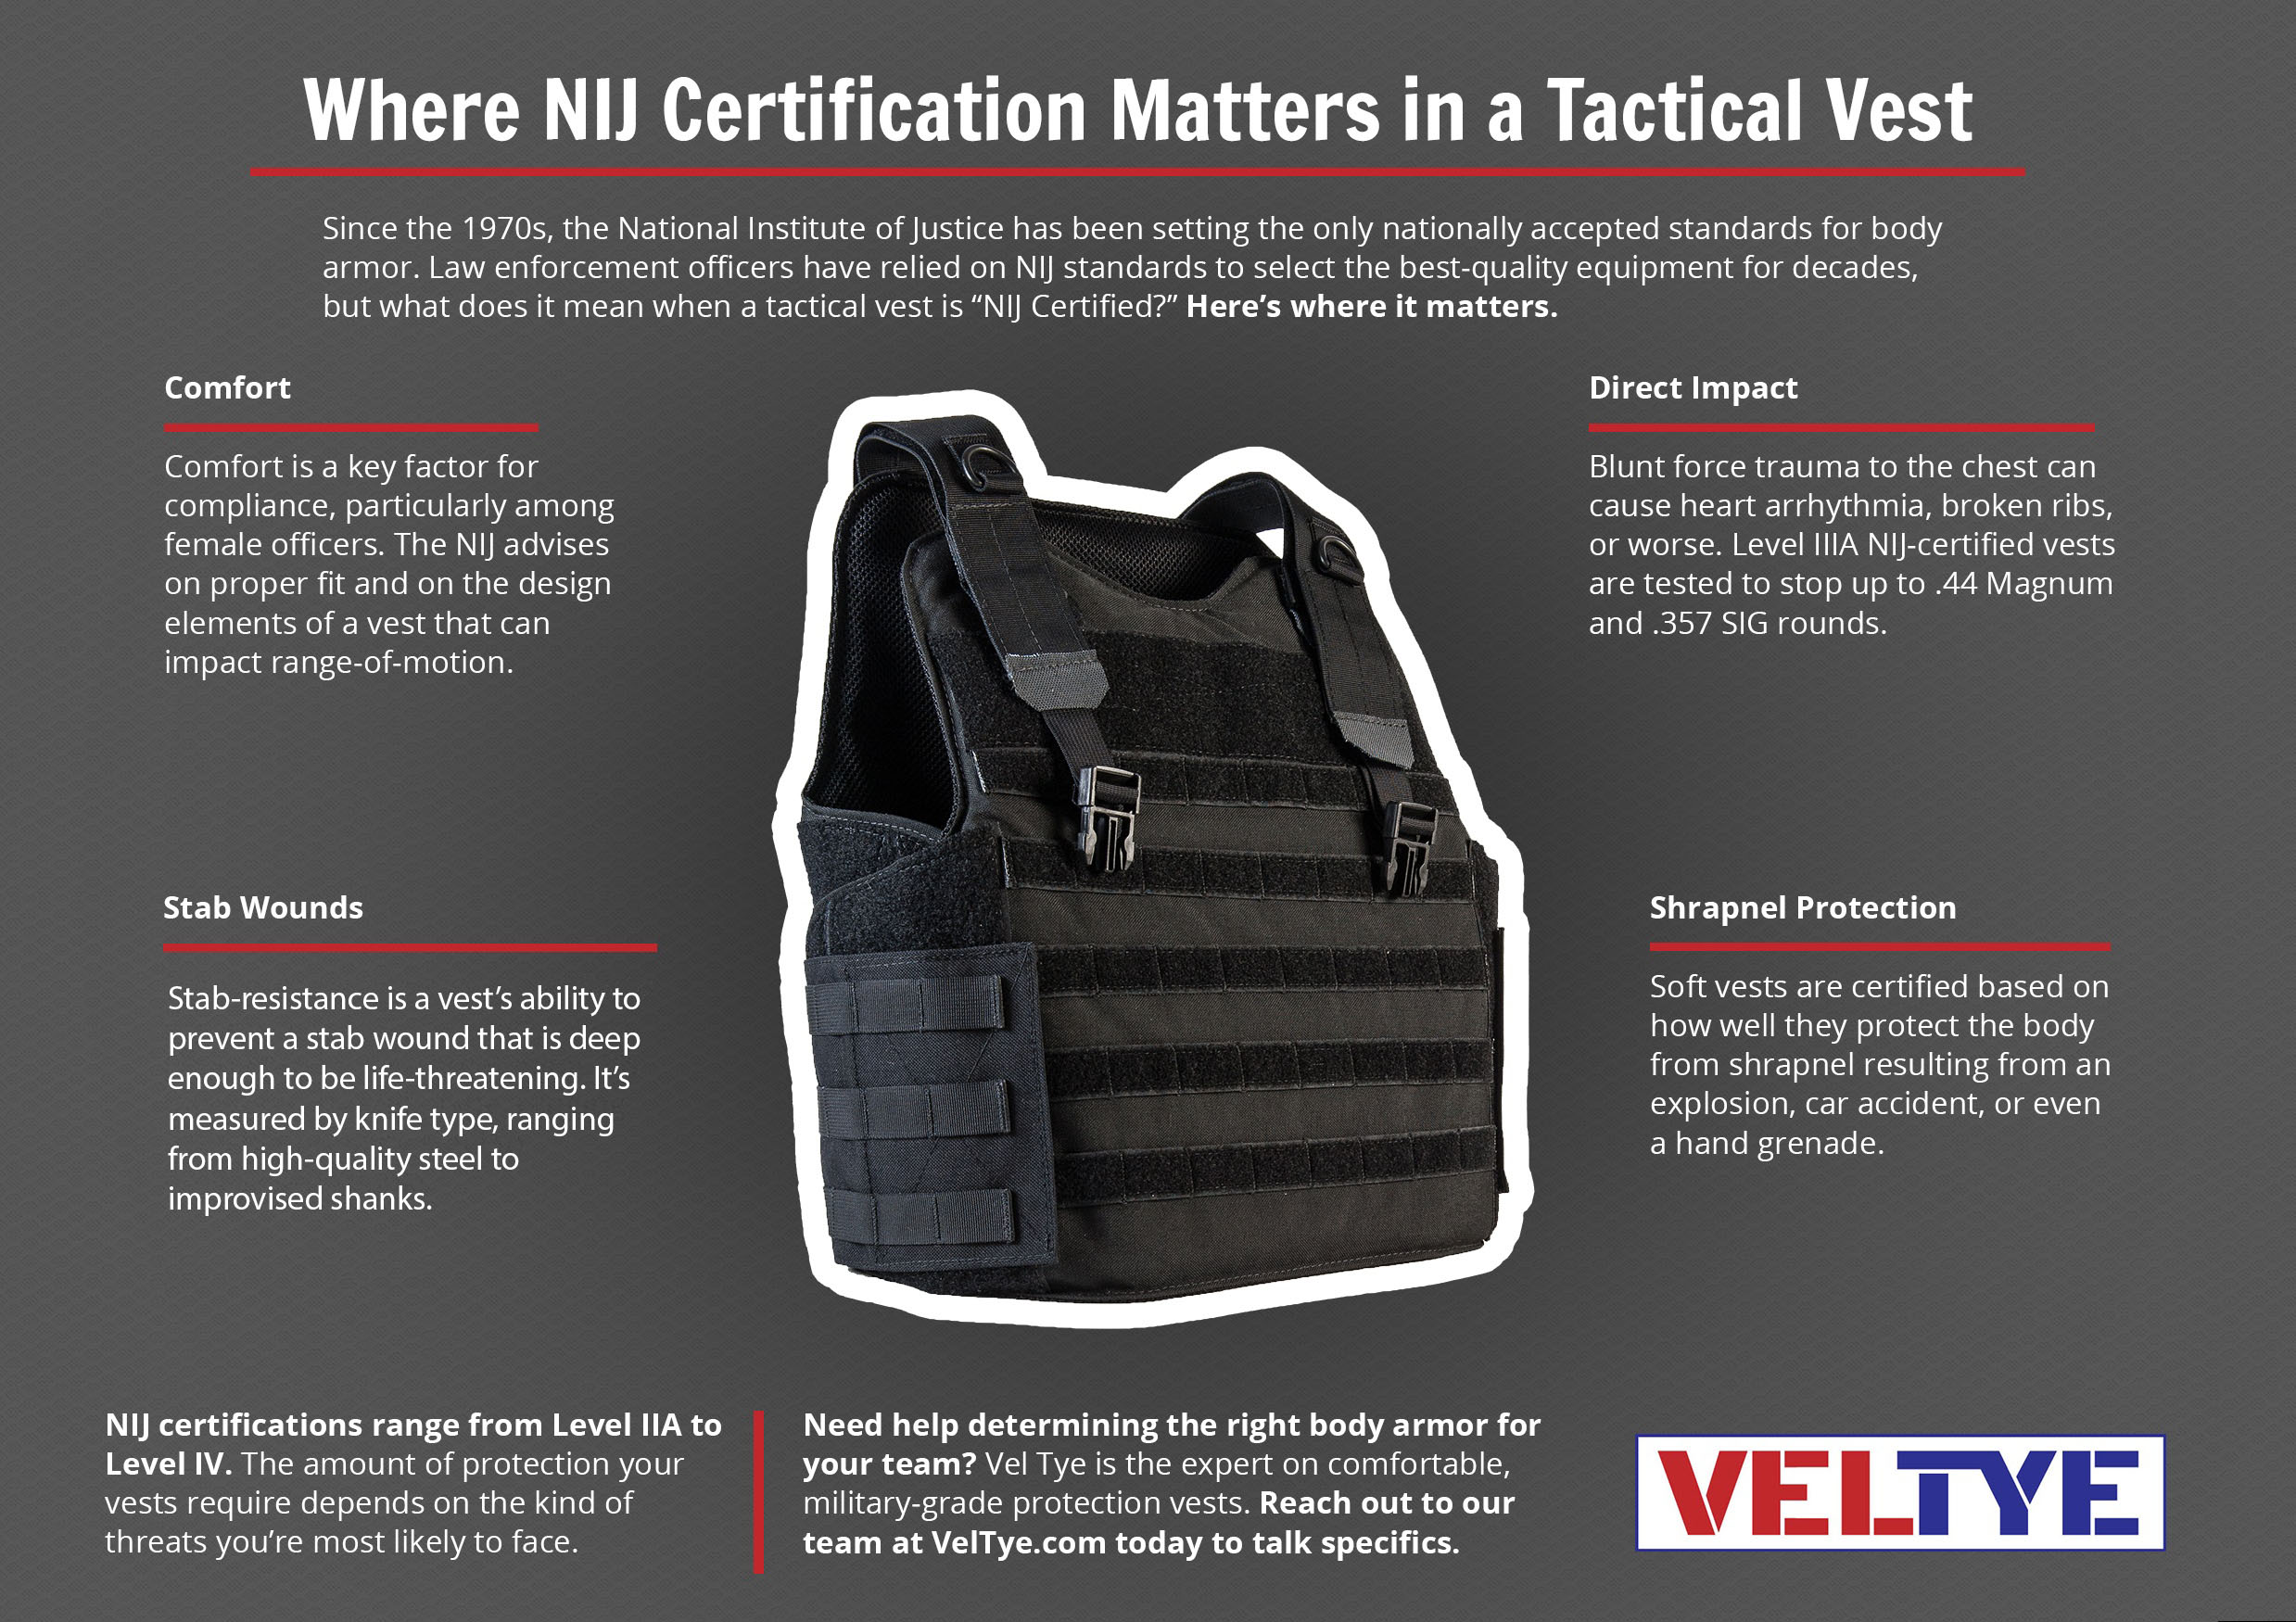 (Vel Tye) Where NIJ Certification Matters in a Tactical Vest Q1 Infographic NEW